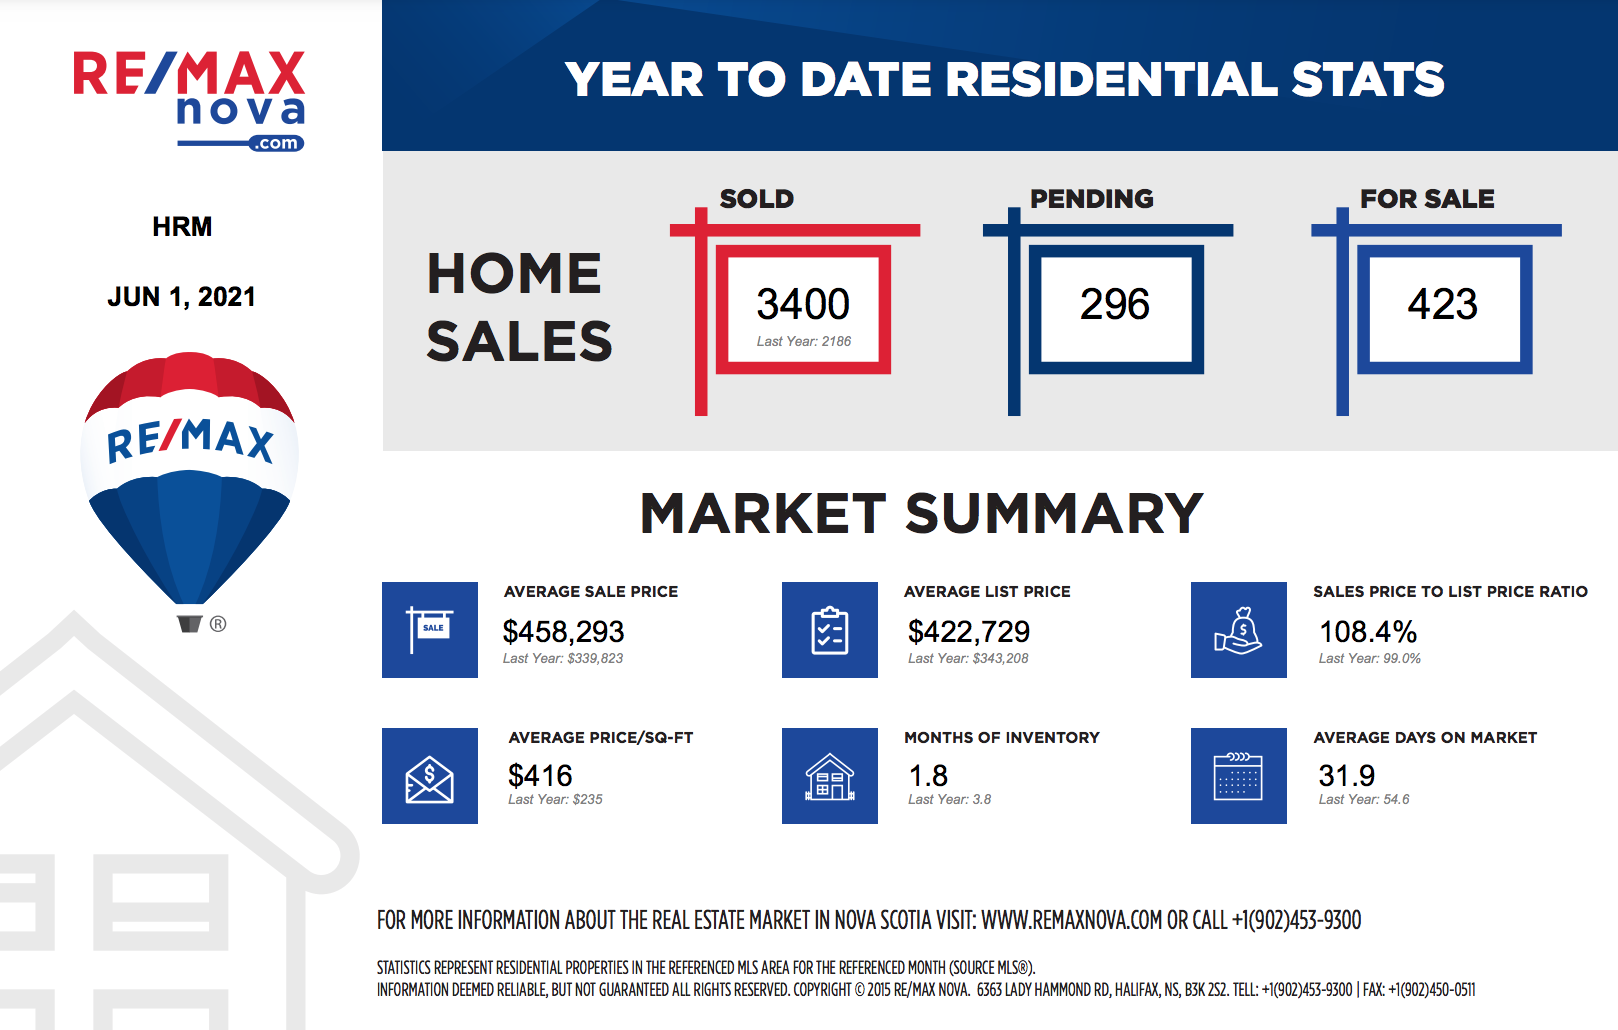 Year to date residential home sales in the greater Halifax region as of June 2021